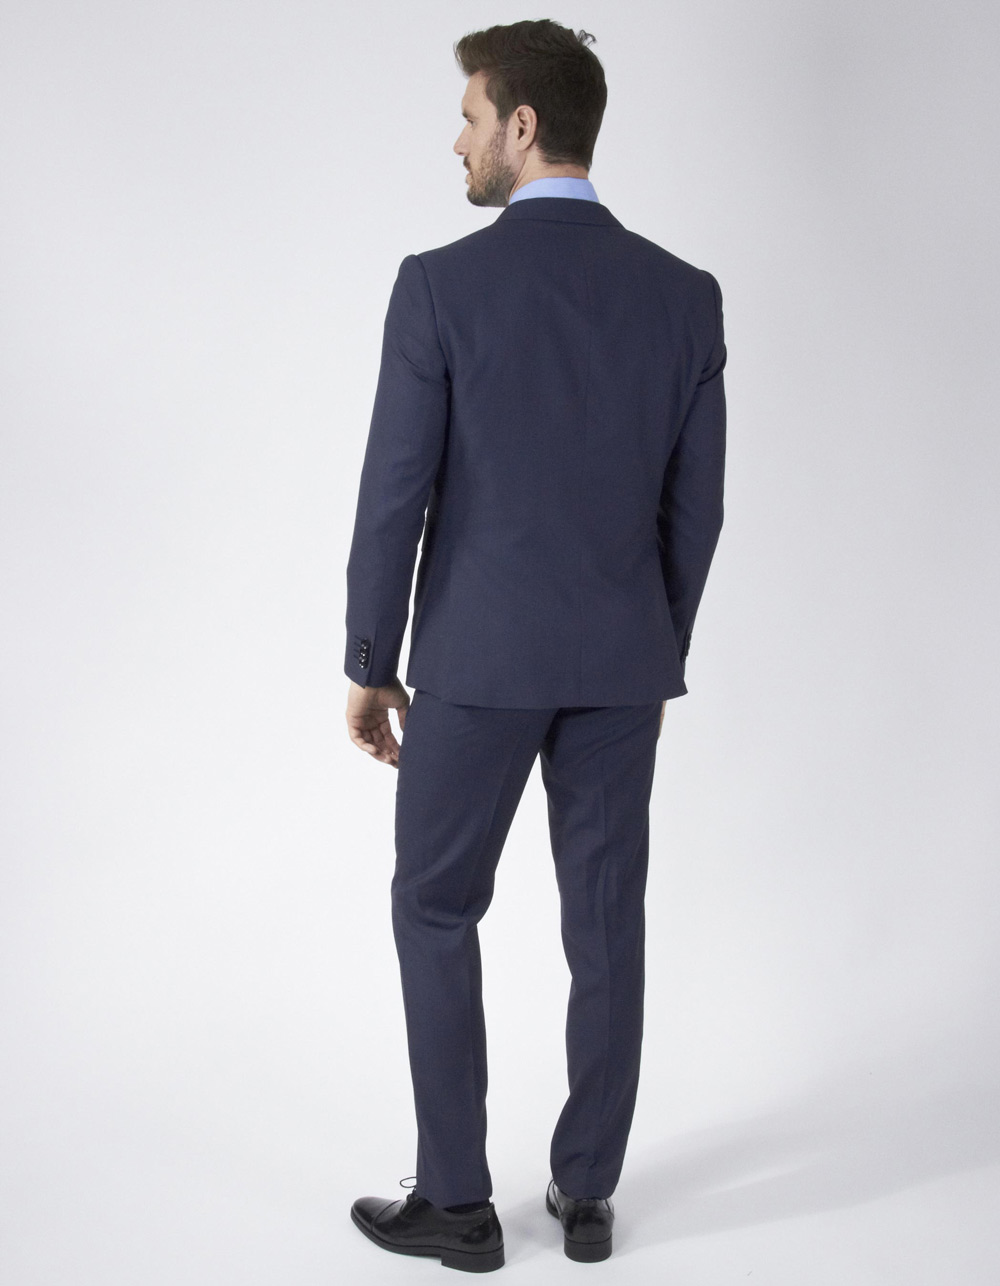 Dark blue plain suit - Backside